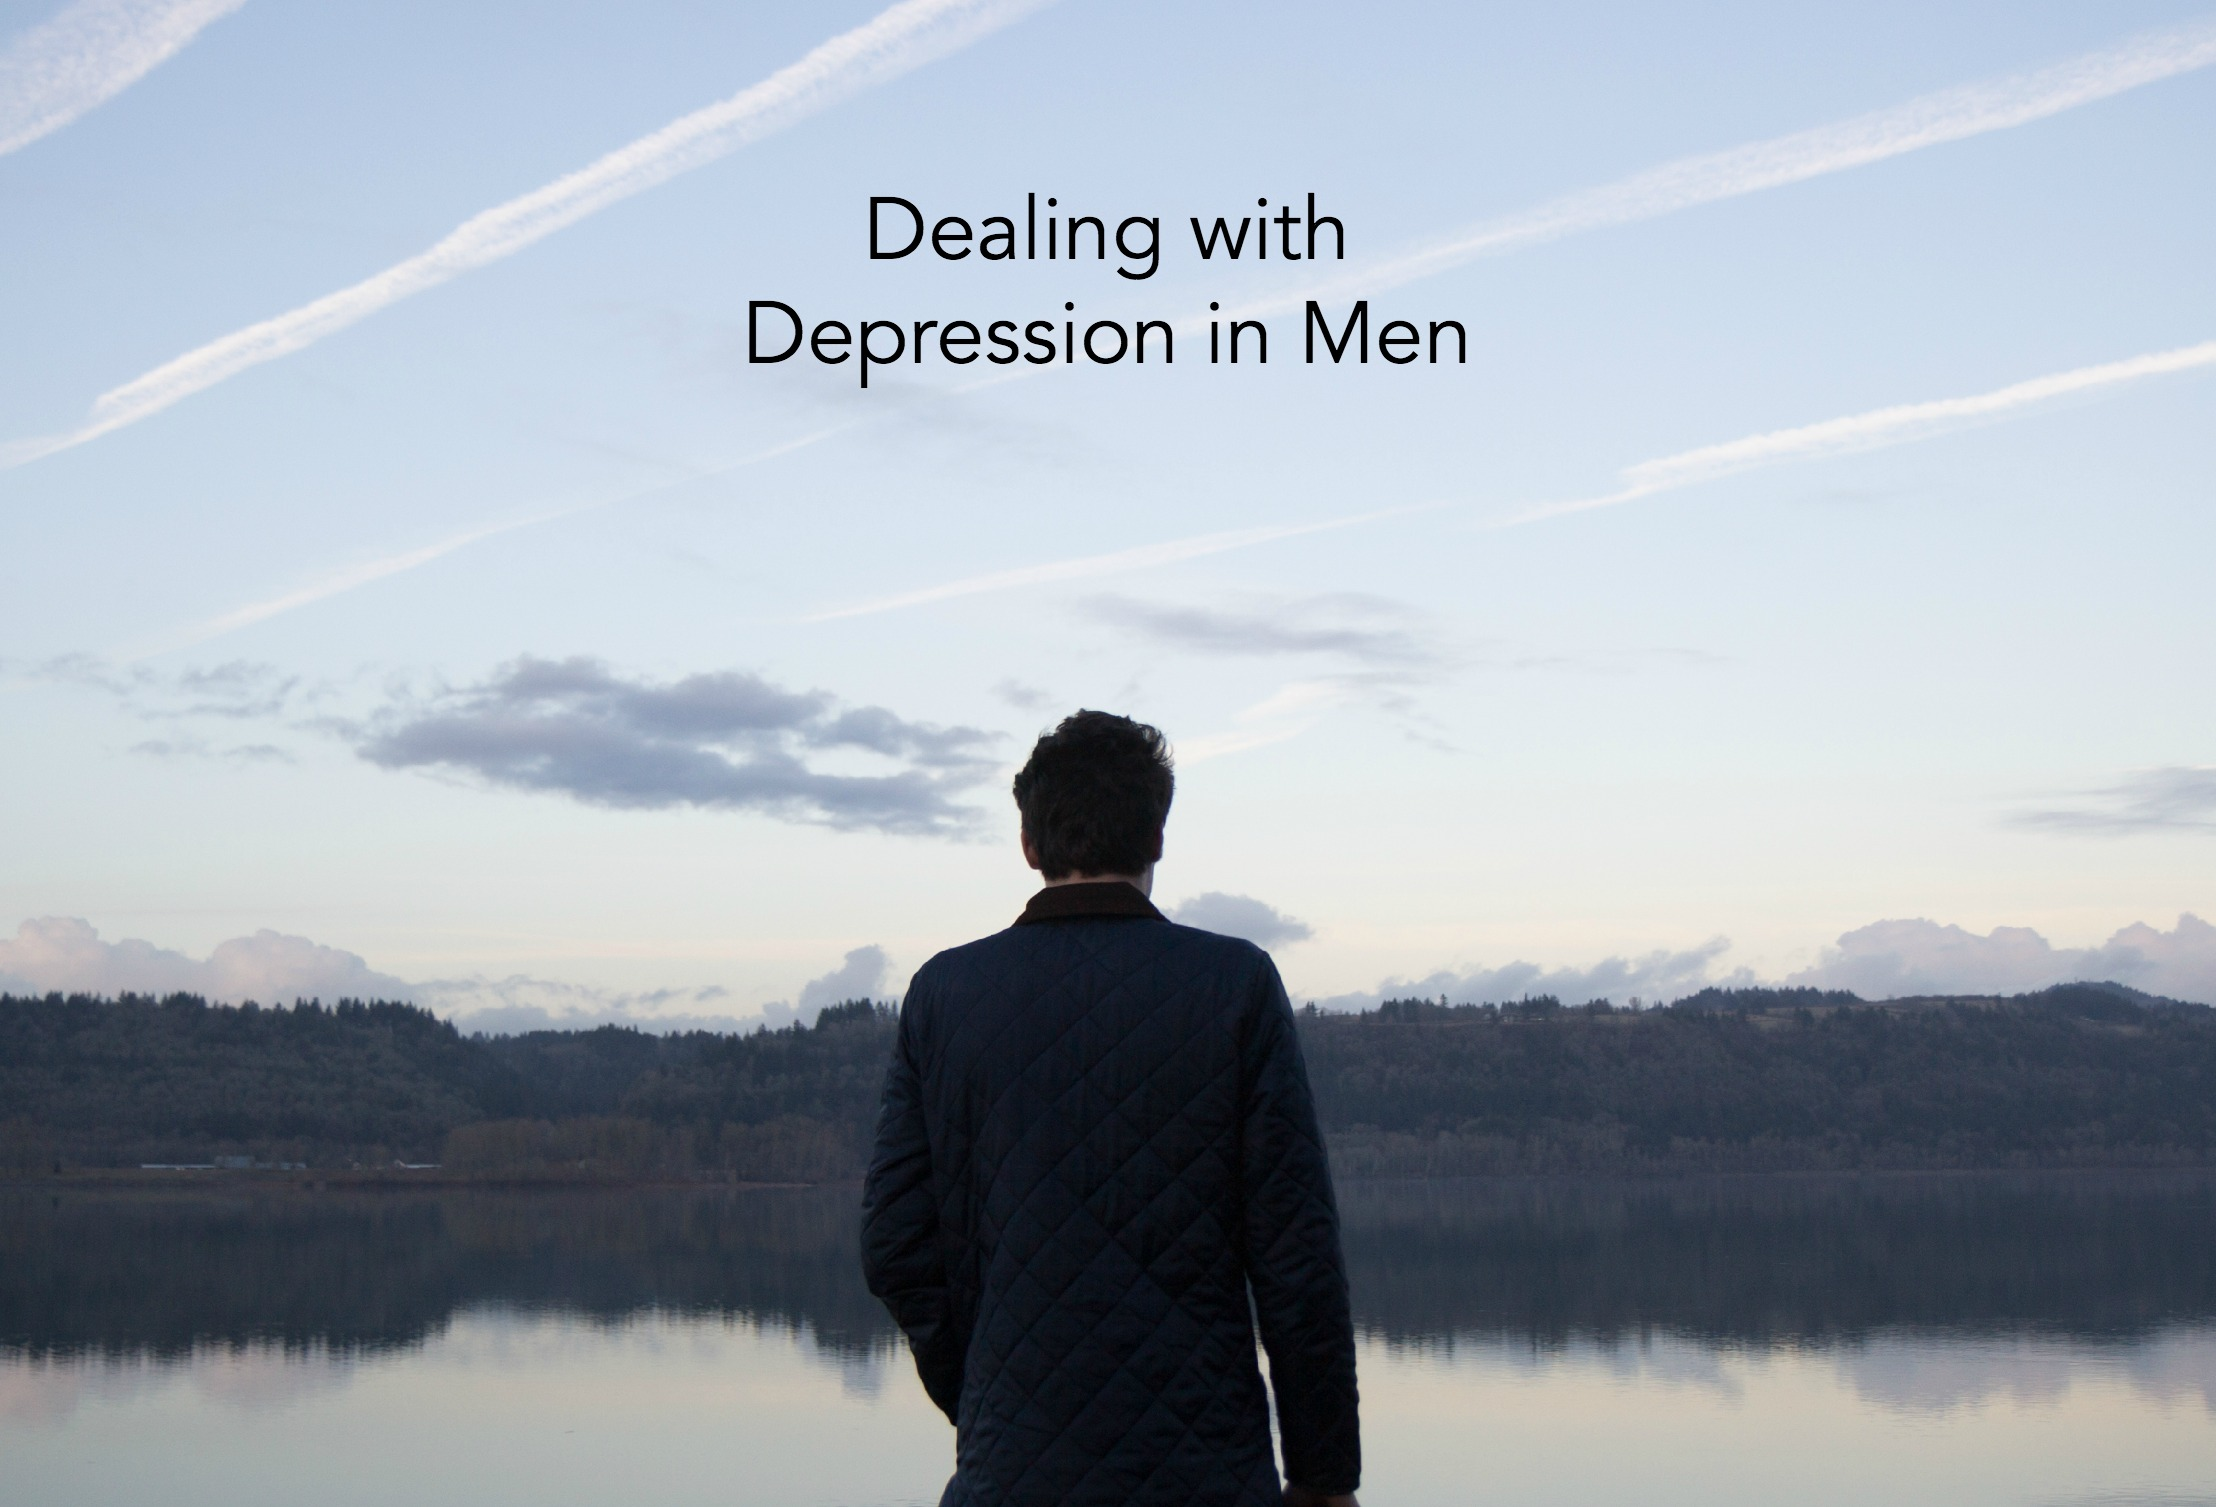 The rising problem of suicides in our society and how to deal with it